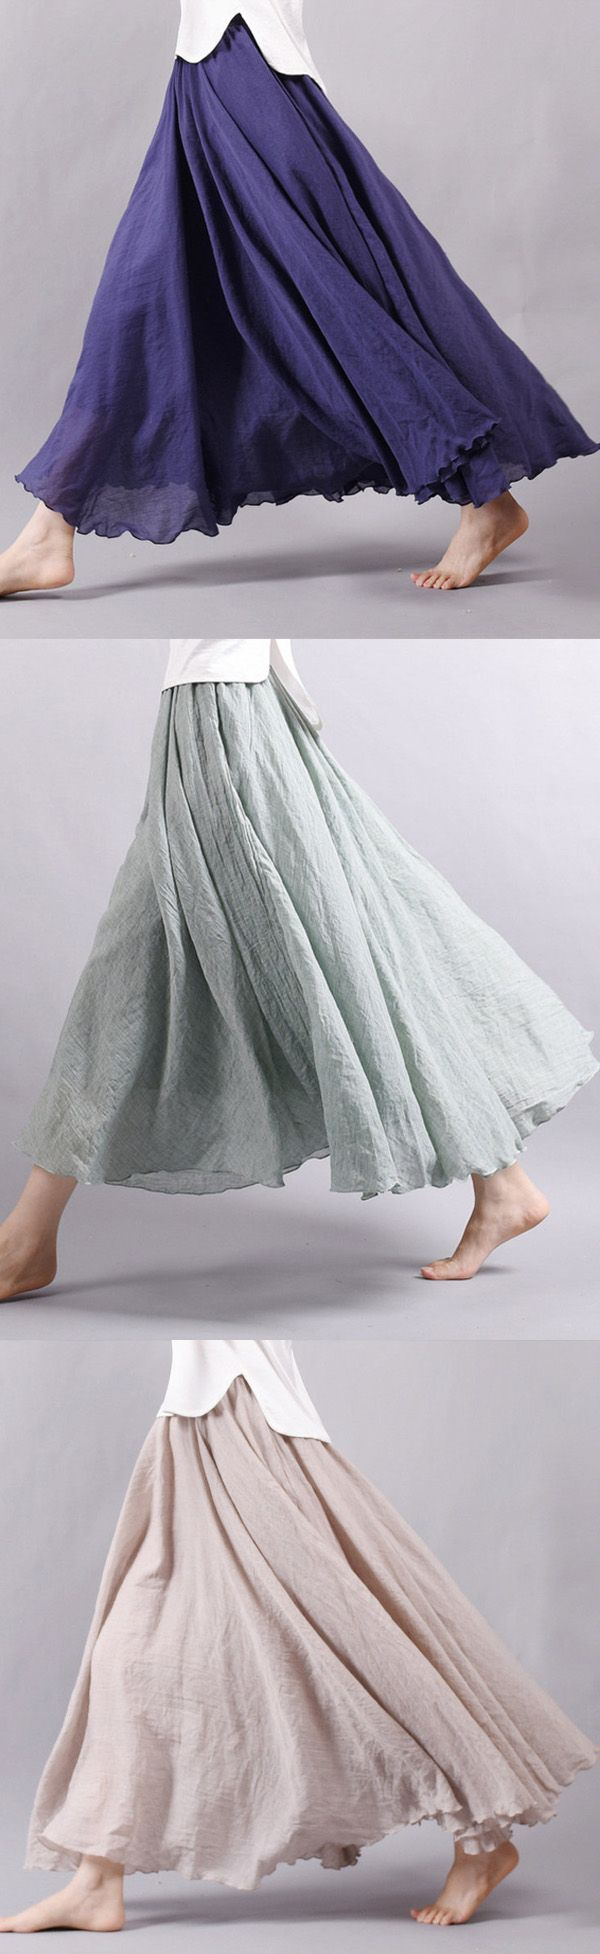 $20.06 Gracila Women Casual Loose Cotton Pure Color Skirt,casual skirt,loose maxi skirt,casual loose skirt,maxi skirt,skirt ideas,skirt design